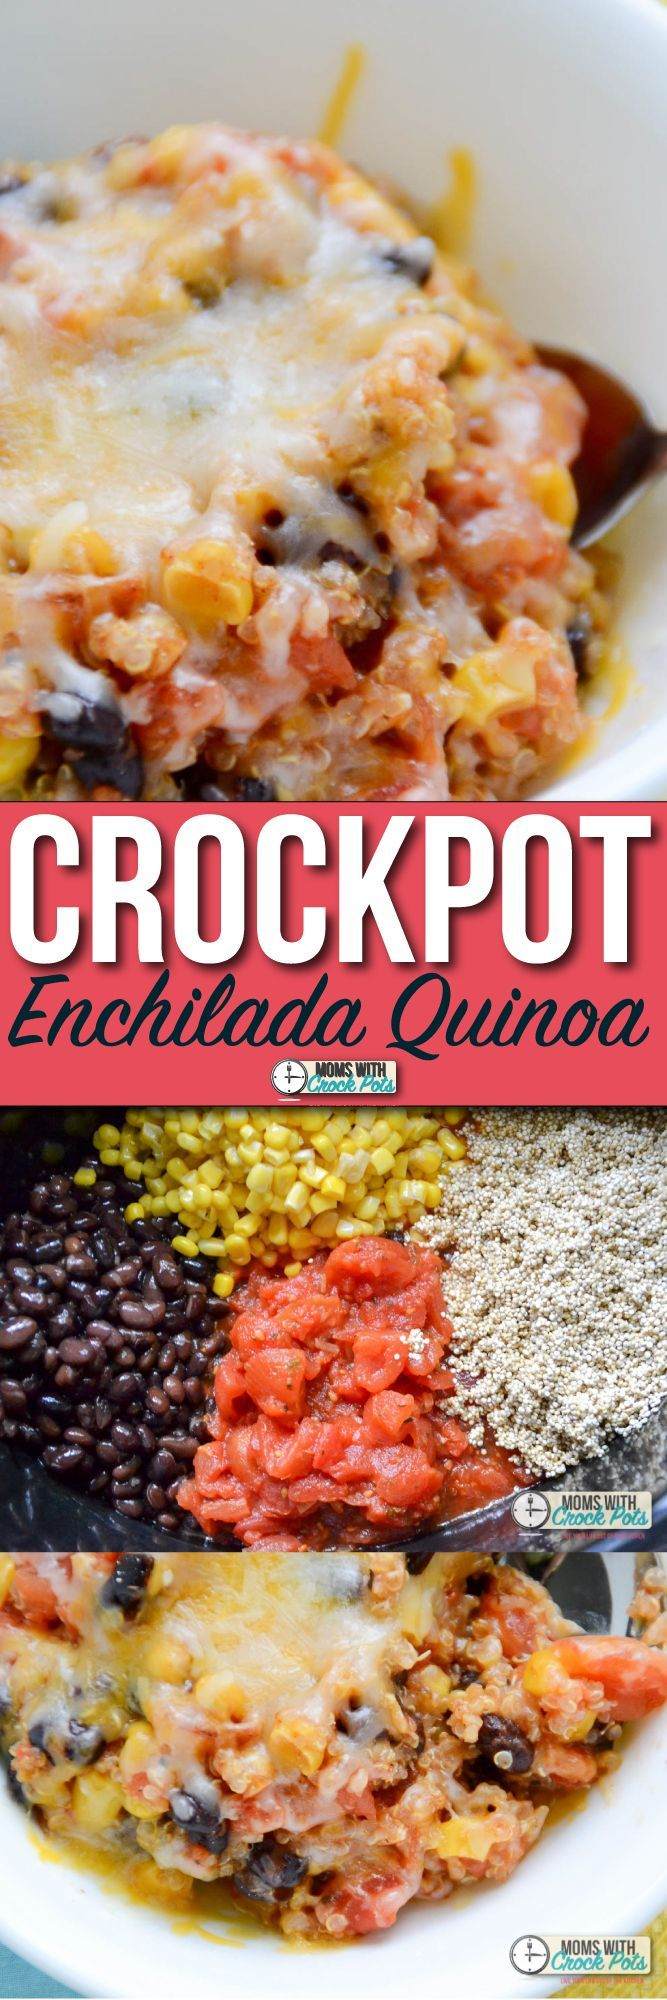 Looking for a meal for meatless monday, or just a yummy vegetarian option! Check out this simple and tasty Crockpot Enchilada Quinoa Recipe! It's a winner!